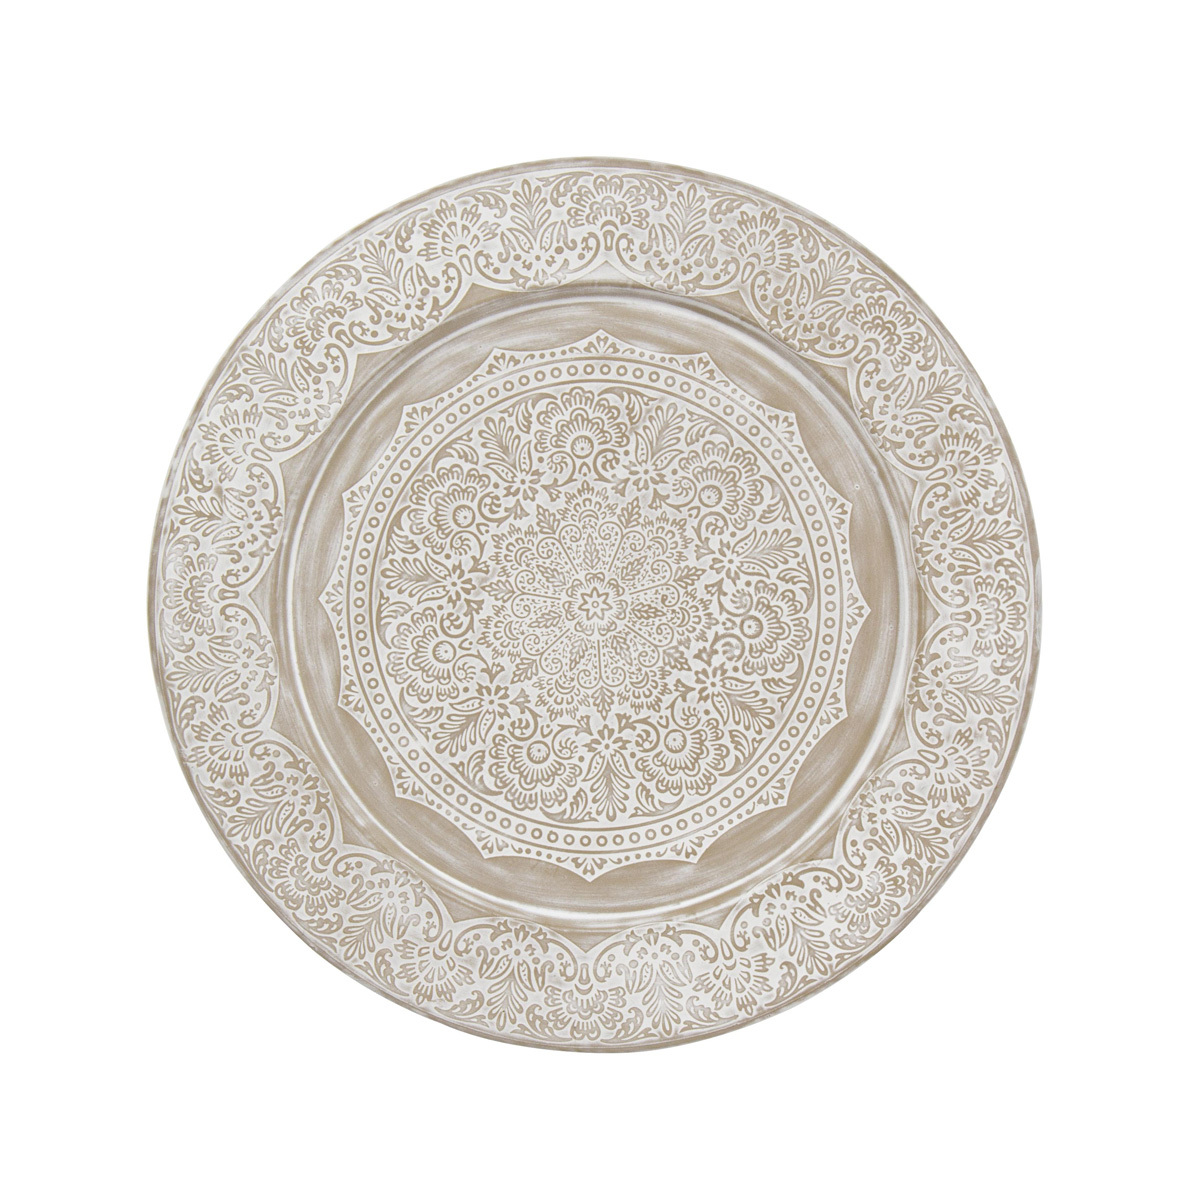 Photos 2: Bizzotto Round table in metal d. 60 0746052